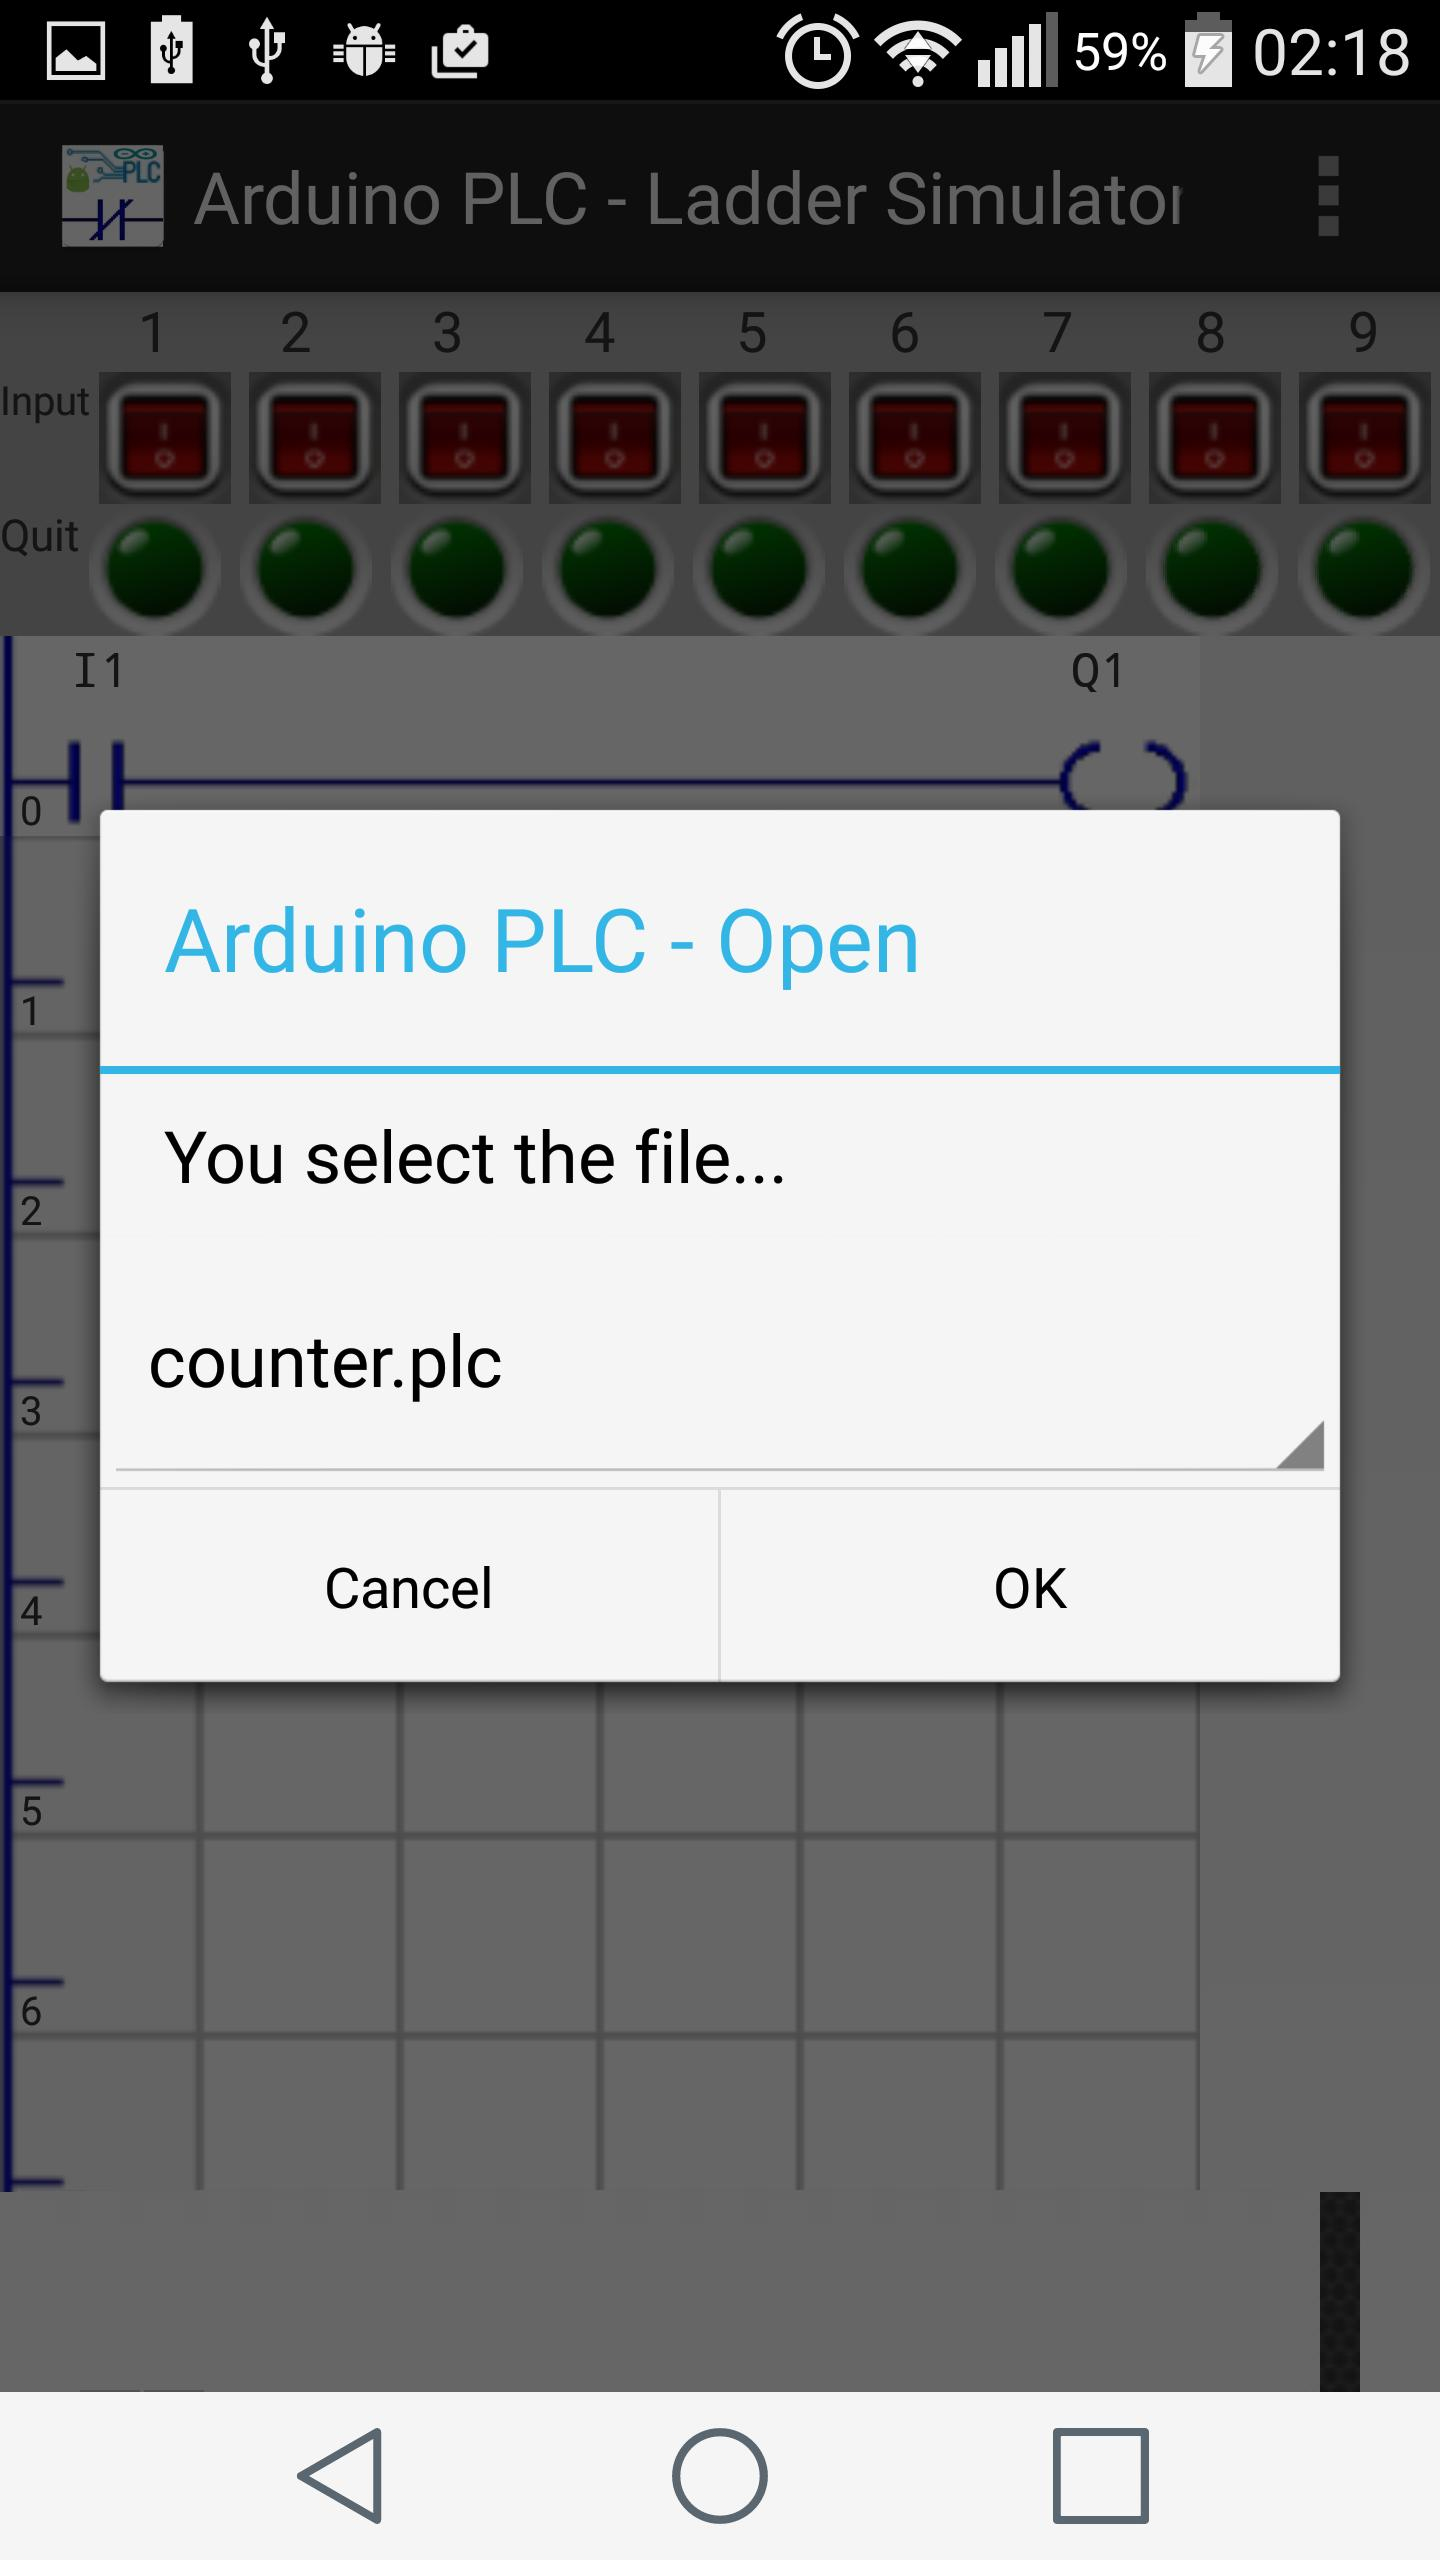 Arduino PLC - Ladder Simulator for Android - APK Download